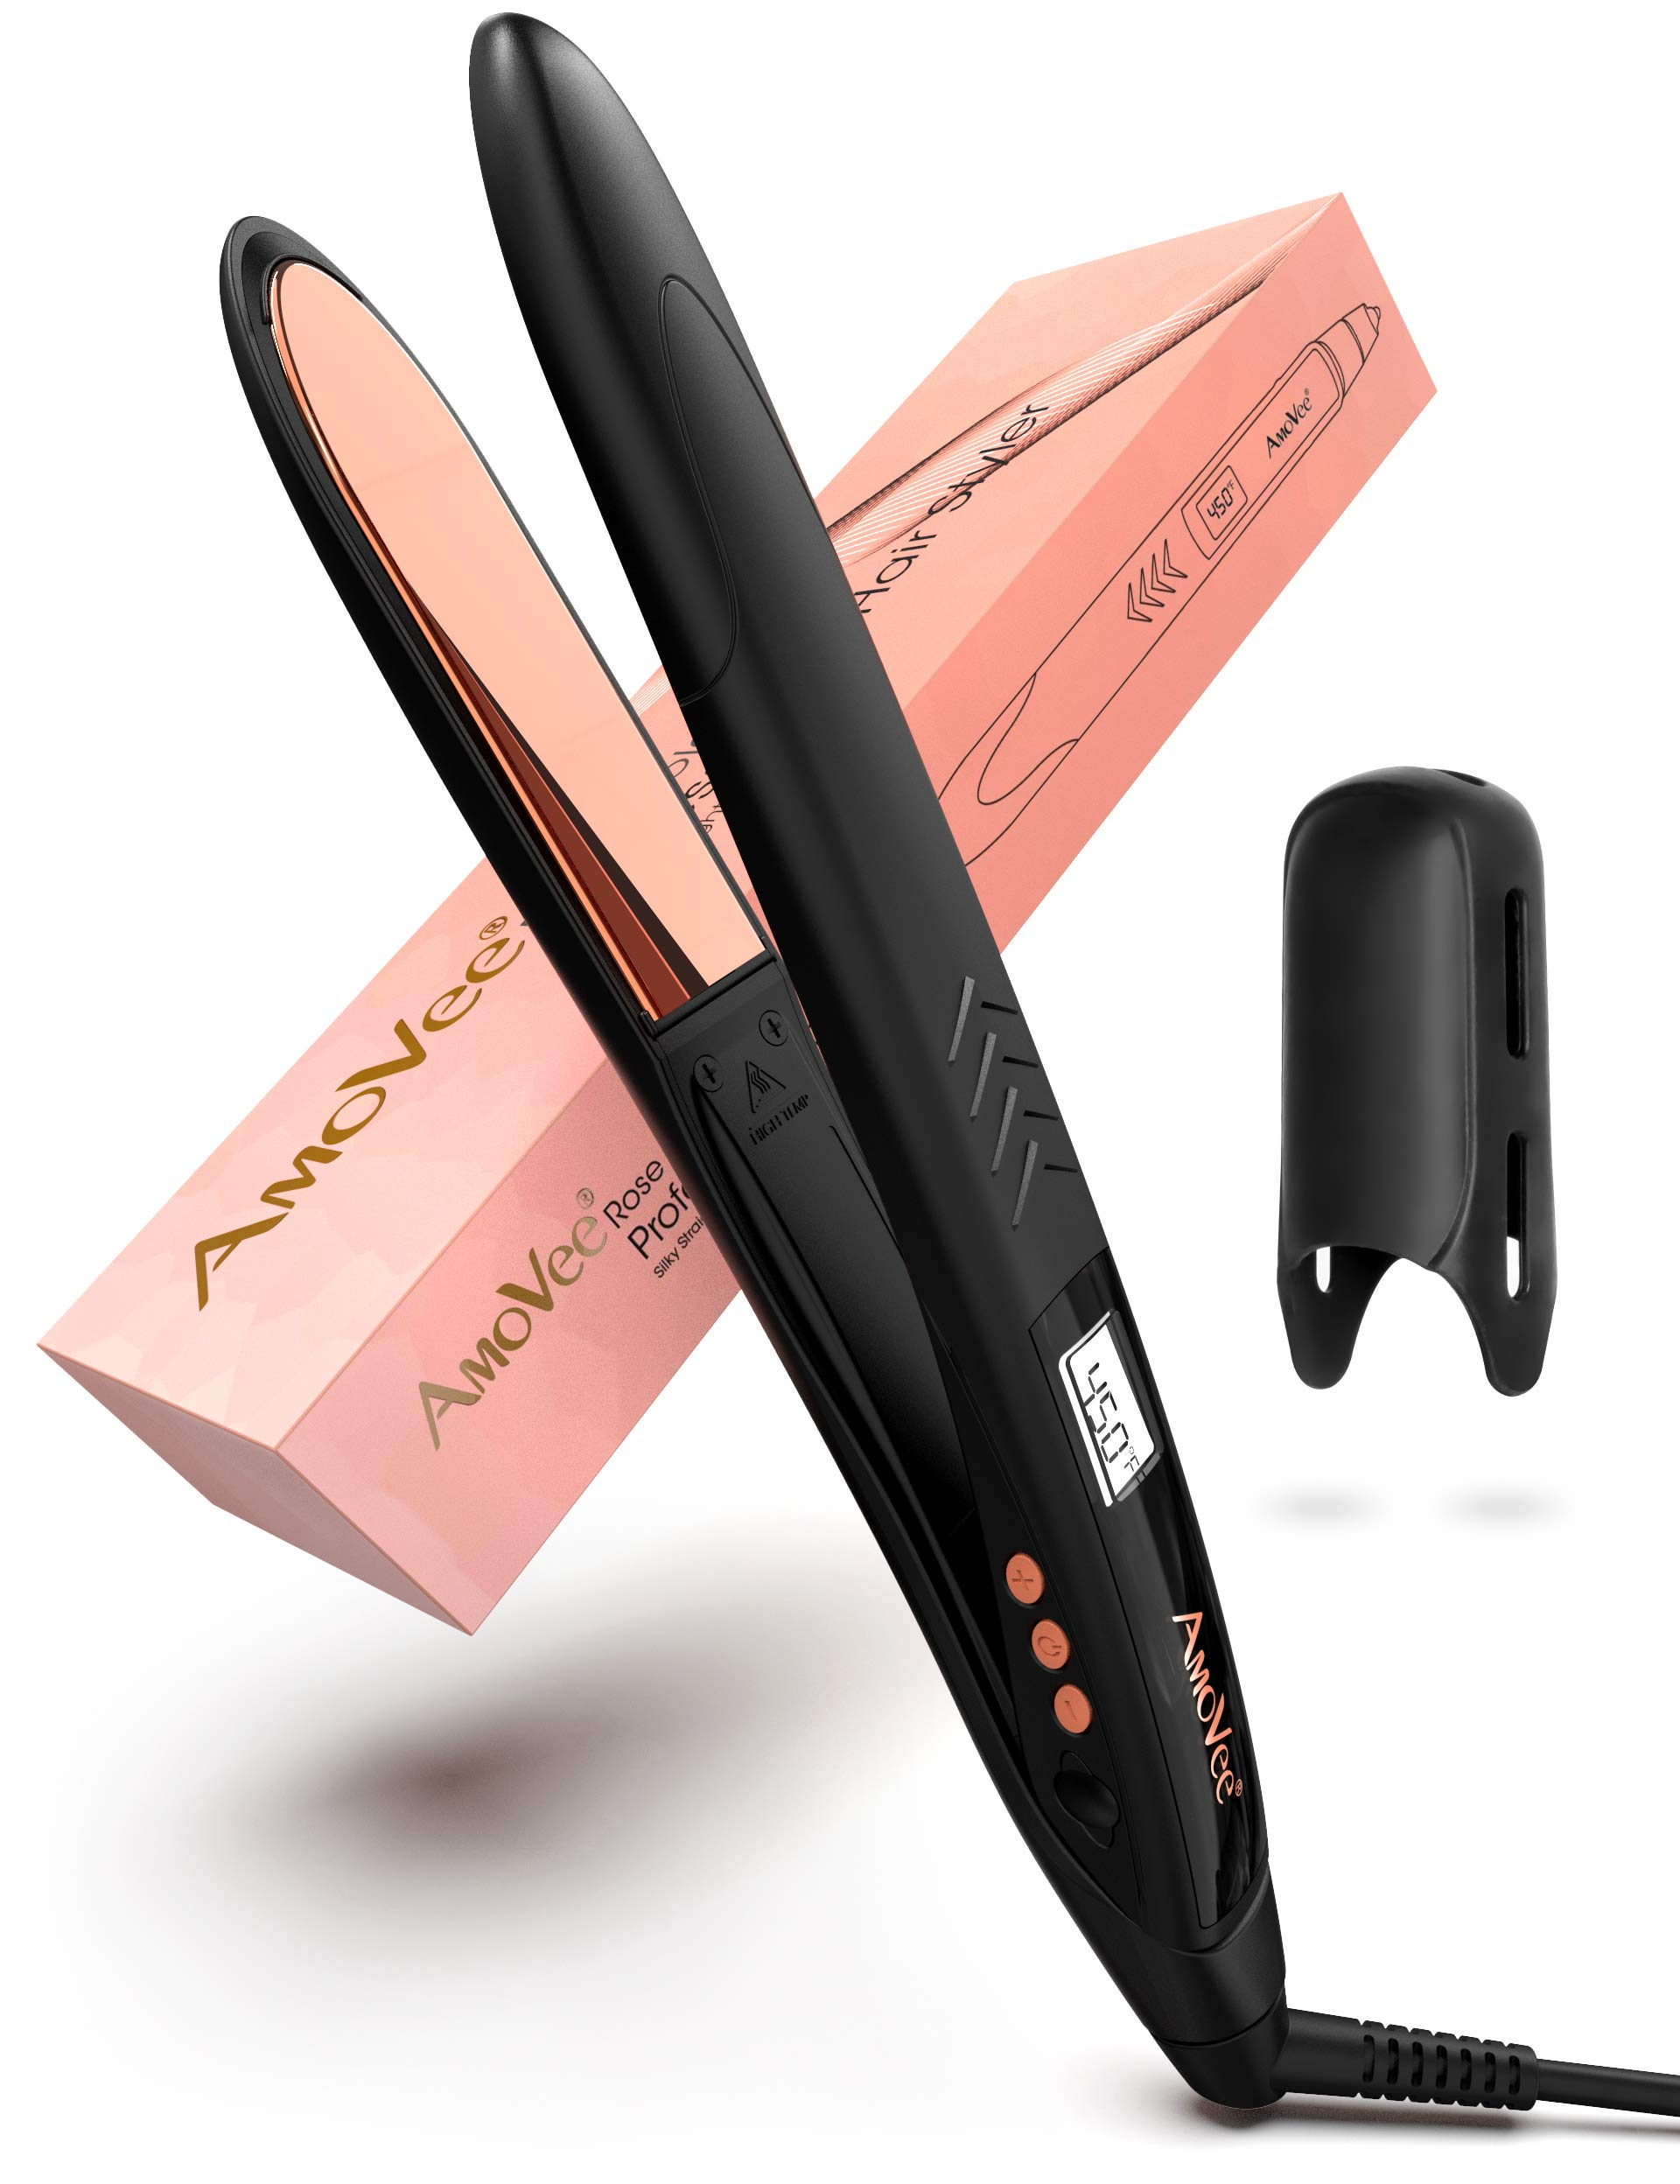 AmoVee Hair Straightener Nano Titanium Flat Iron Professional 2 in 1 Flat Iron and Curling Iron for All Hair Types, 1 Inch, Black/Rose Gold by AmoVee